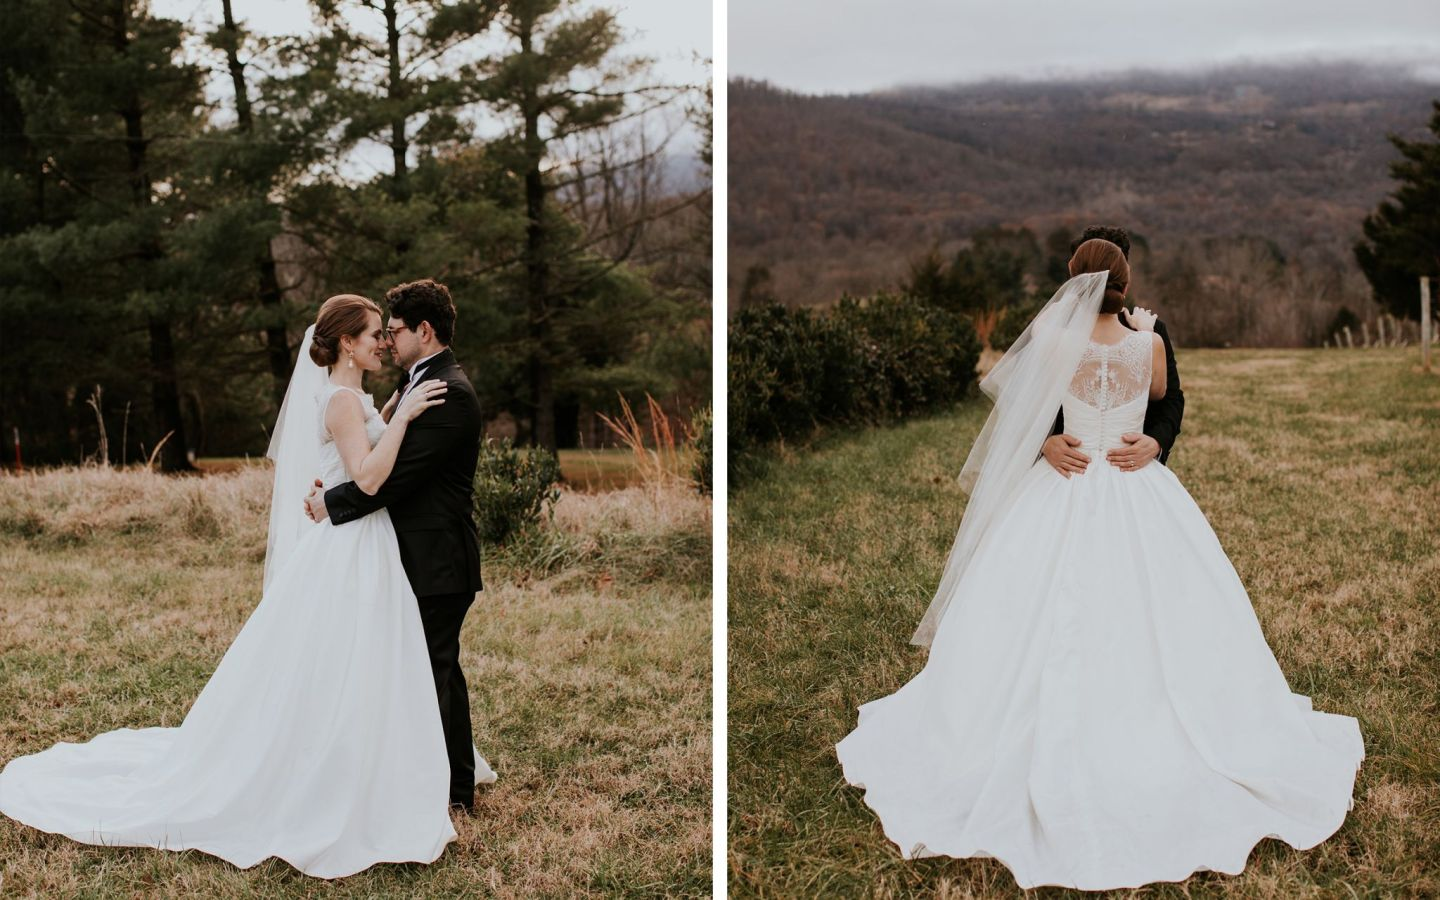 charlottesville bride - charlottesville wedding - augusta jones wedding dress - augusta jones paz - winter bride - farmhouse at veritas wedding